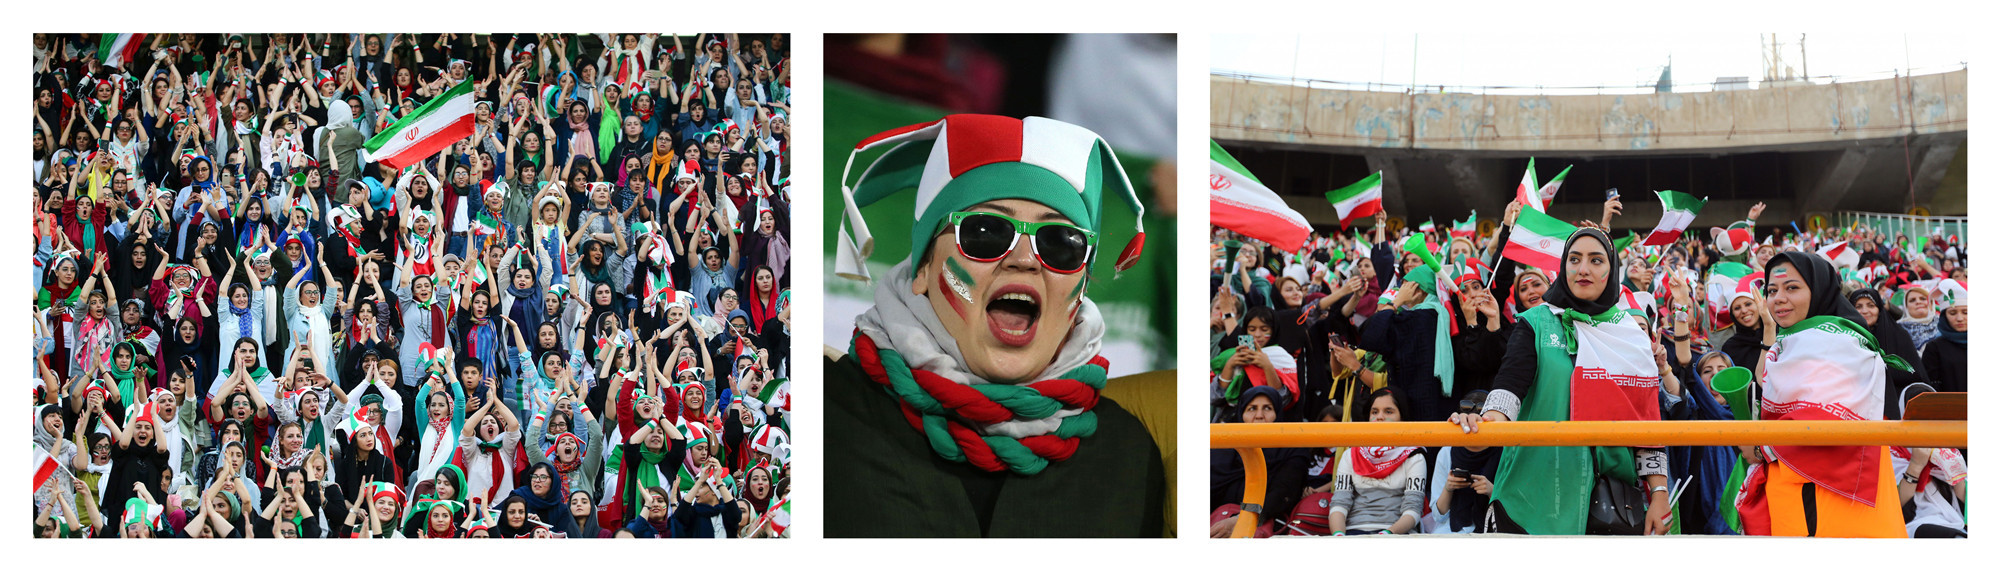 There were emotional scenes as Iranian women flocked into Azadi Stadium for the first time in nearly 40 years ©Getty Images